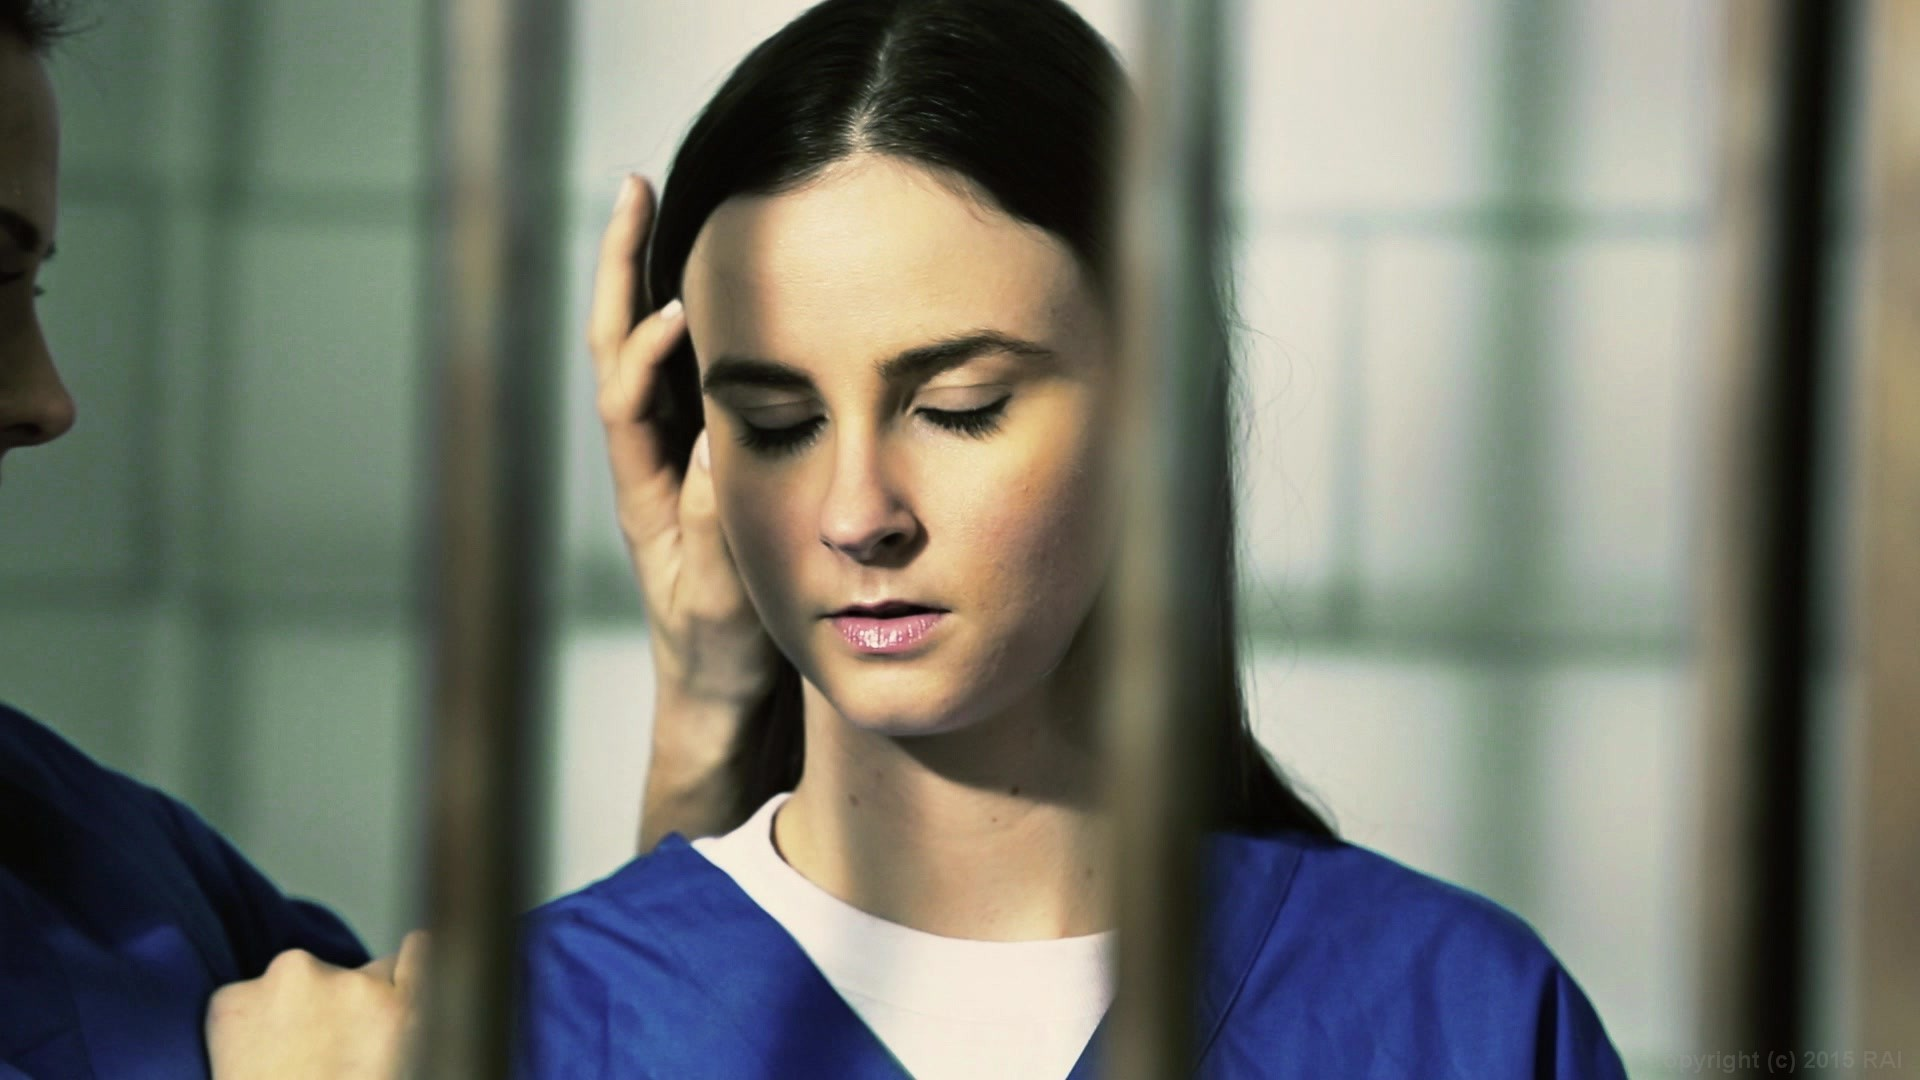 Free Video Preview image 1 from Prison Lesbians Vol. 2